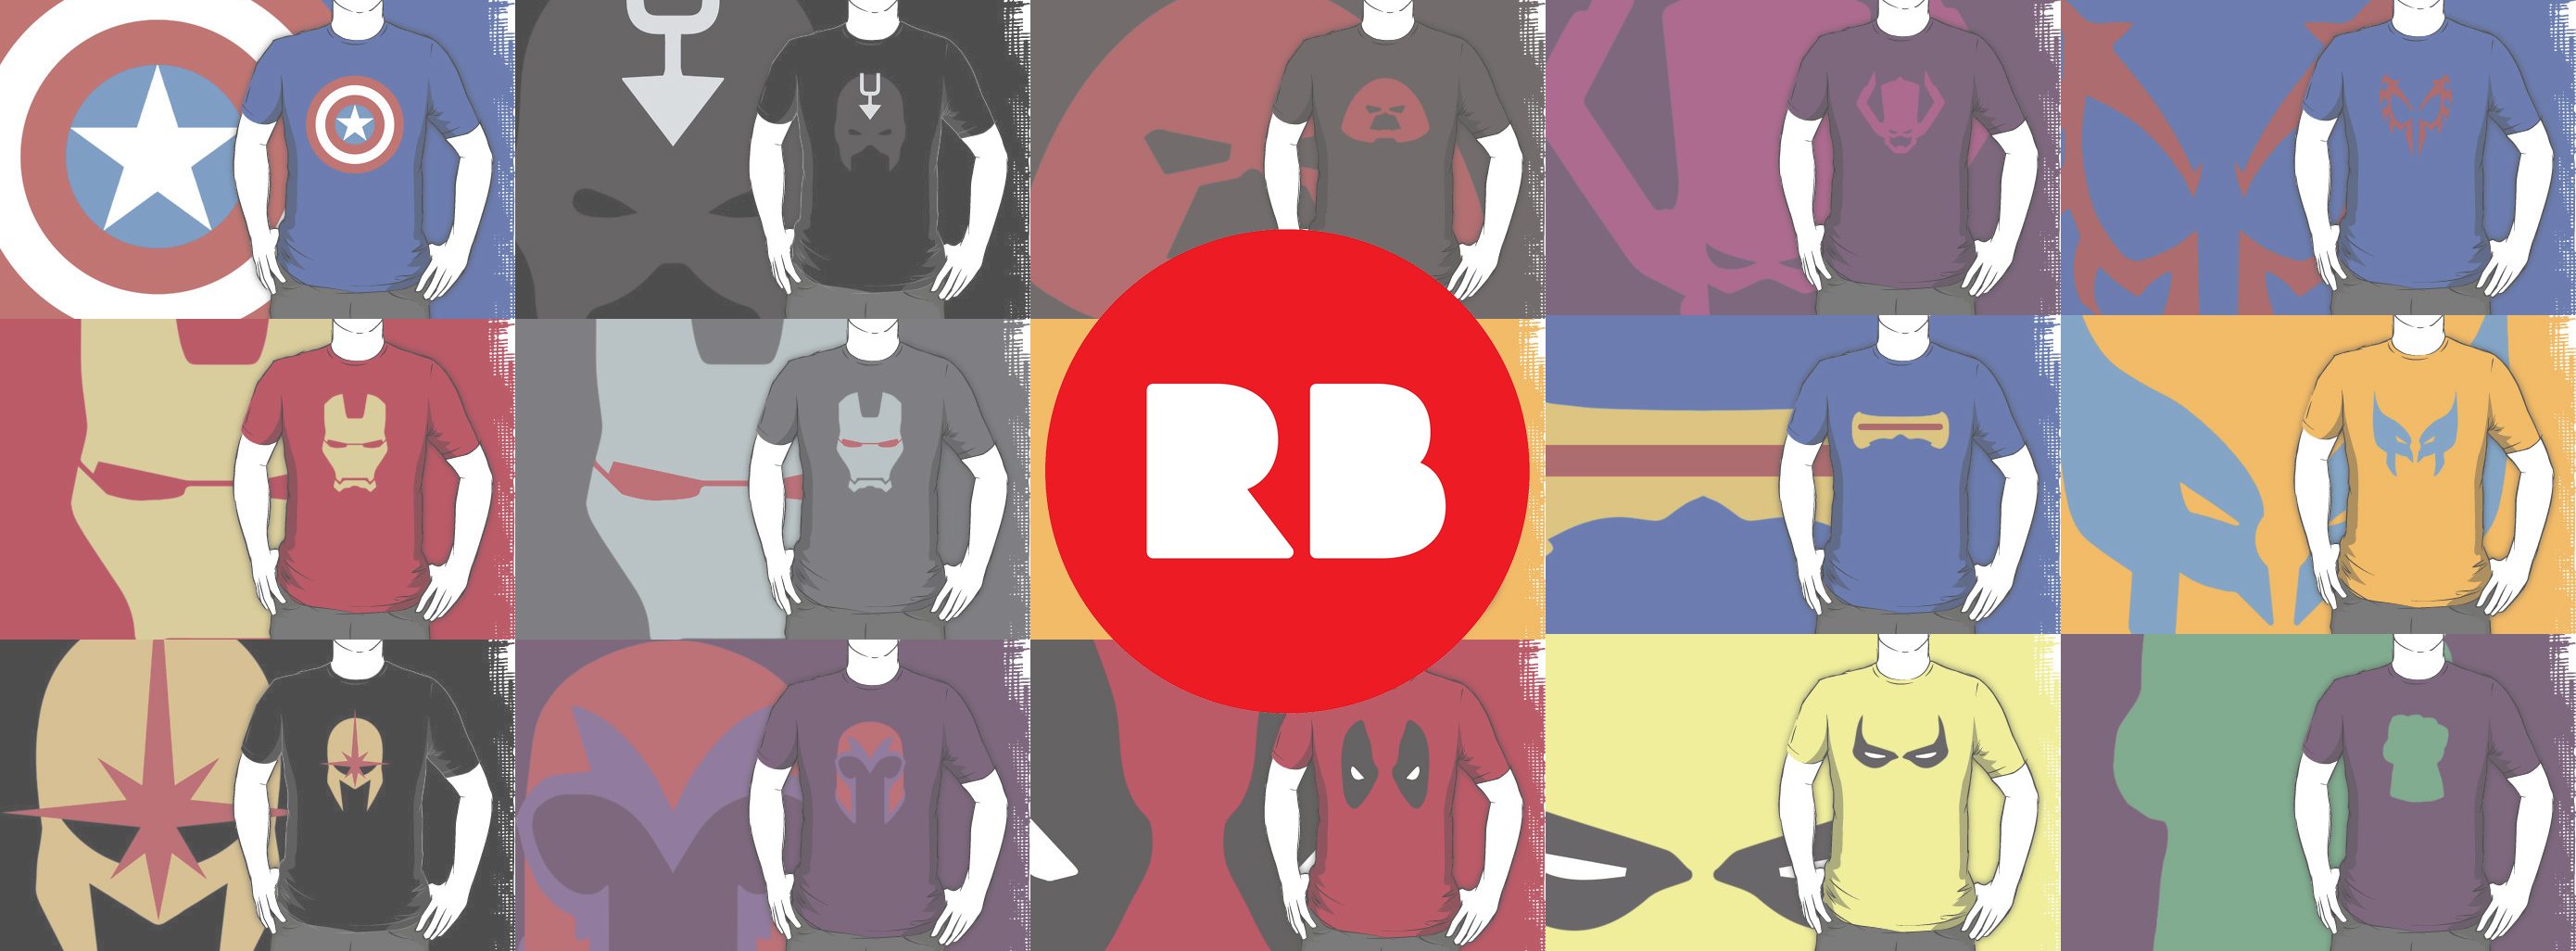 Minimalist Heroes Red Bubble shop image.